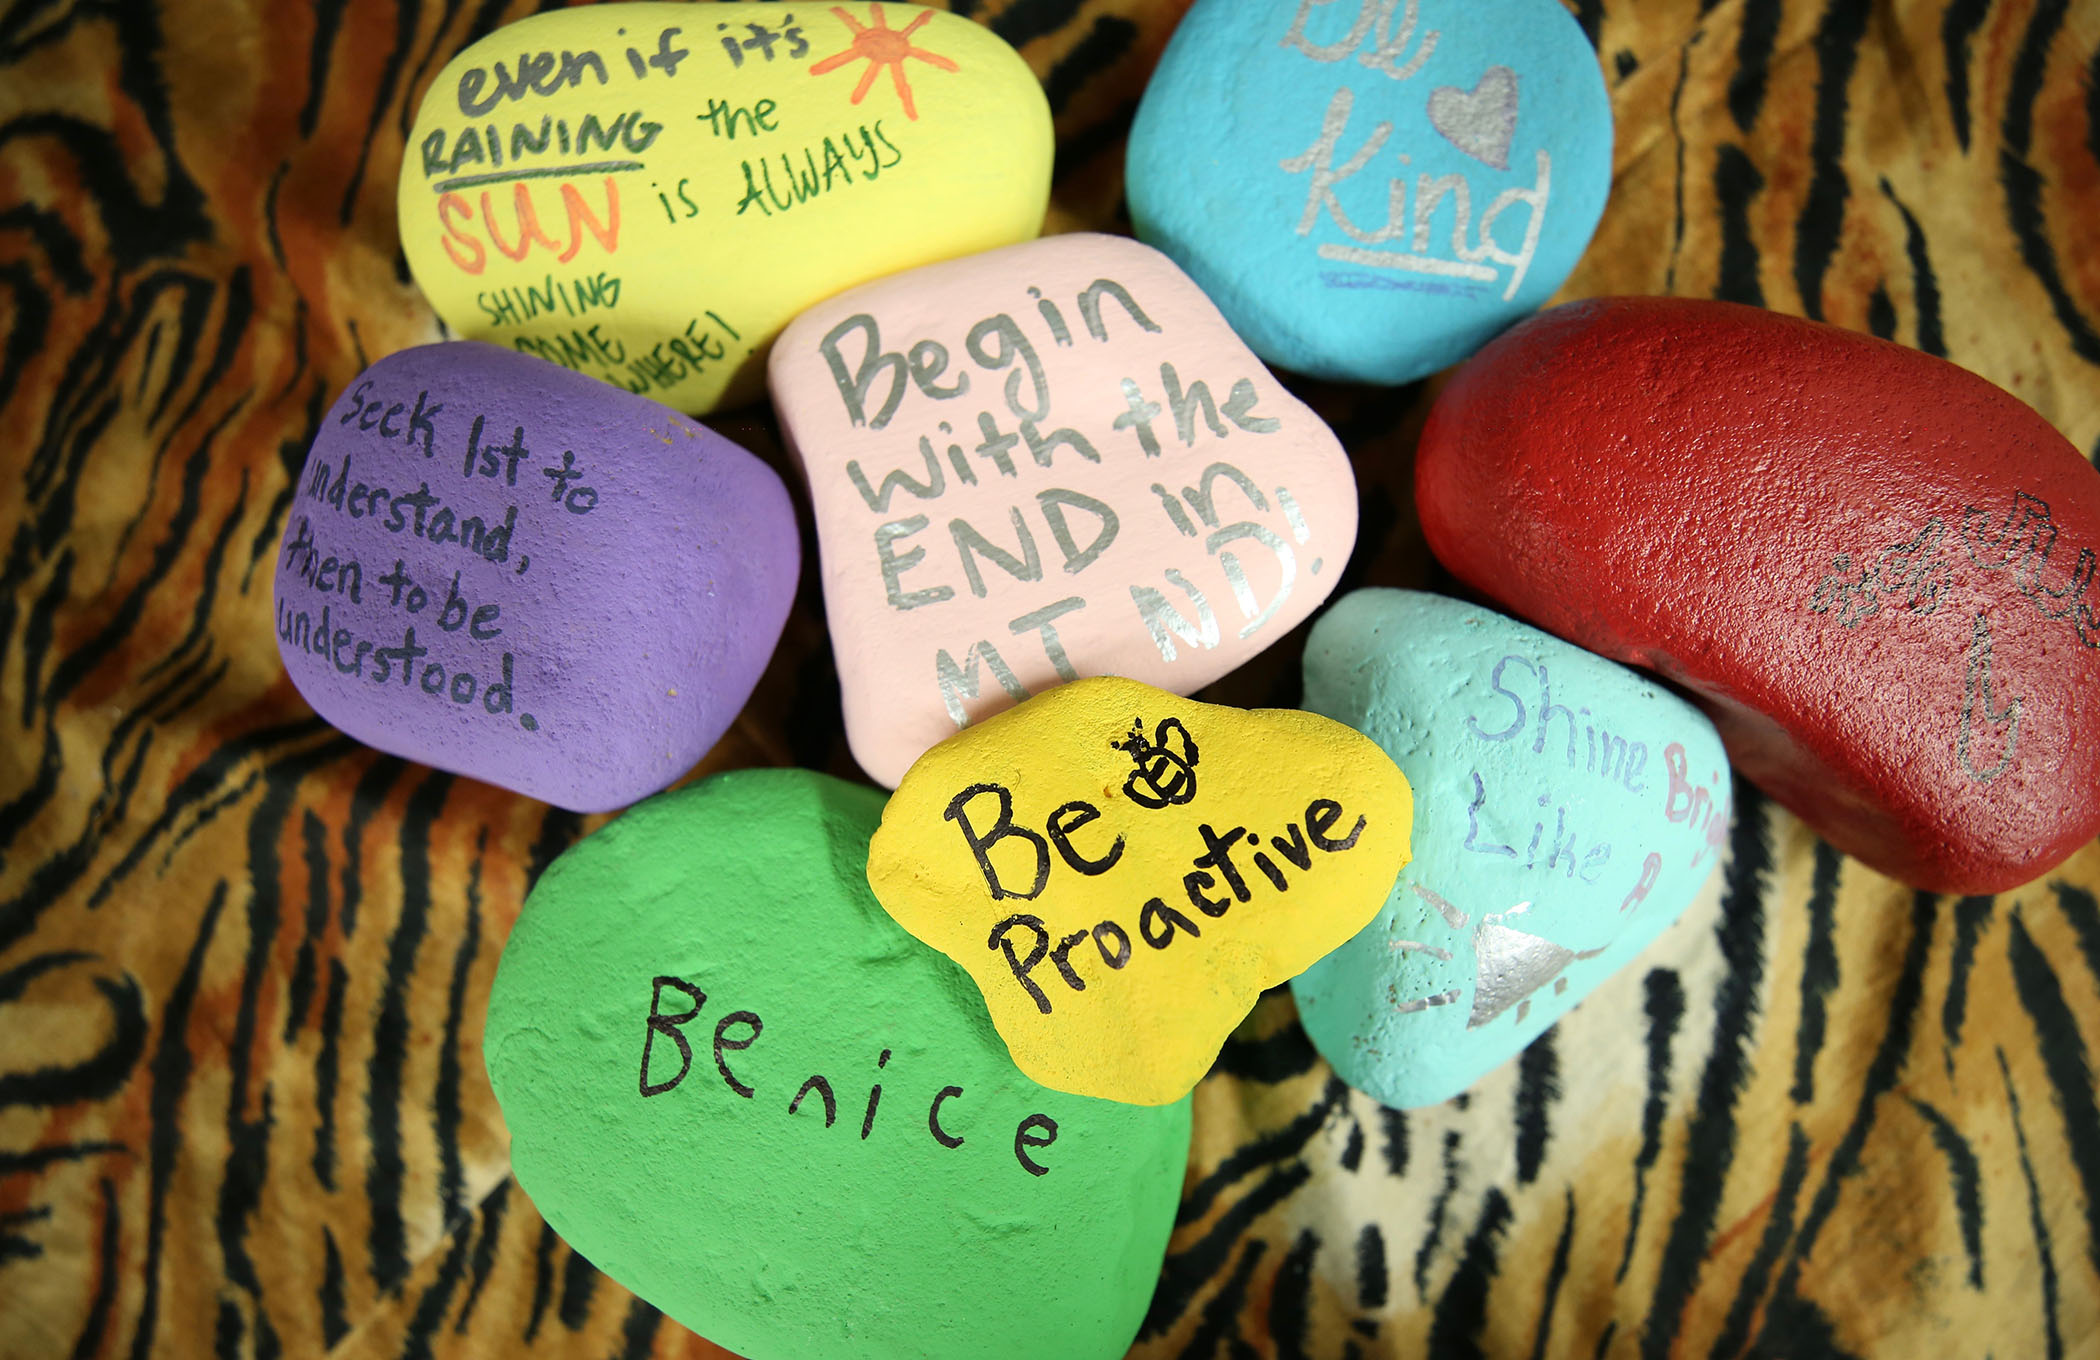 Kindness rocks stacked with the first of the seven habits of highly effective people on top.